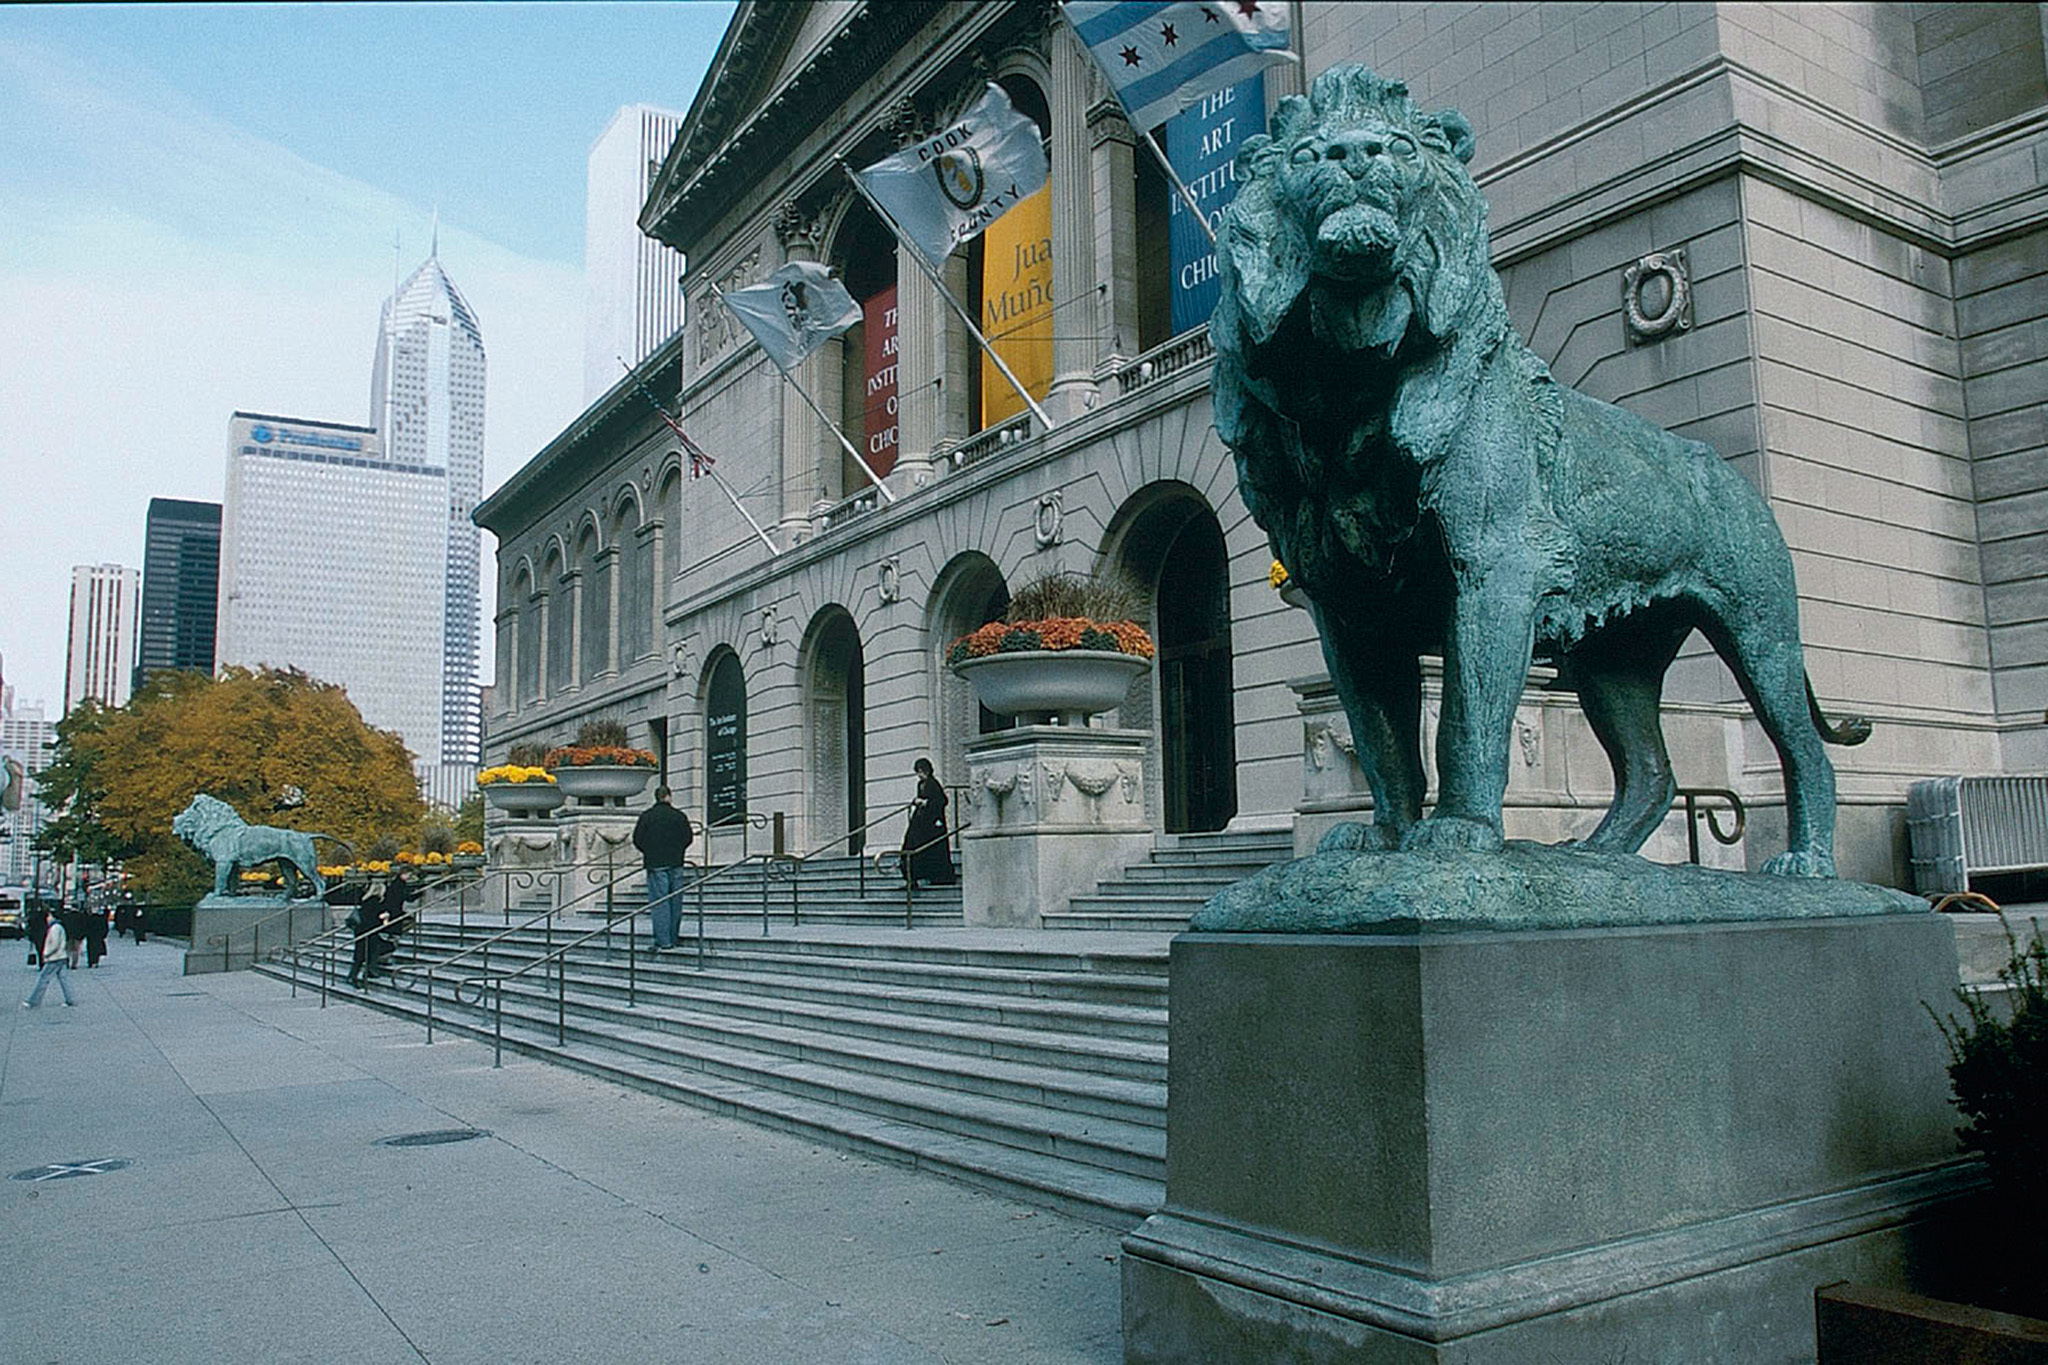 Find a masterpiece at Art Institute of Chicago